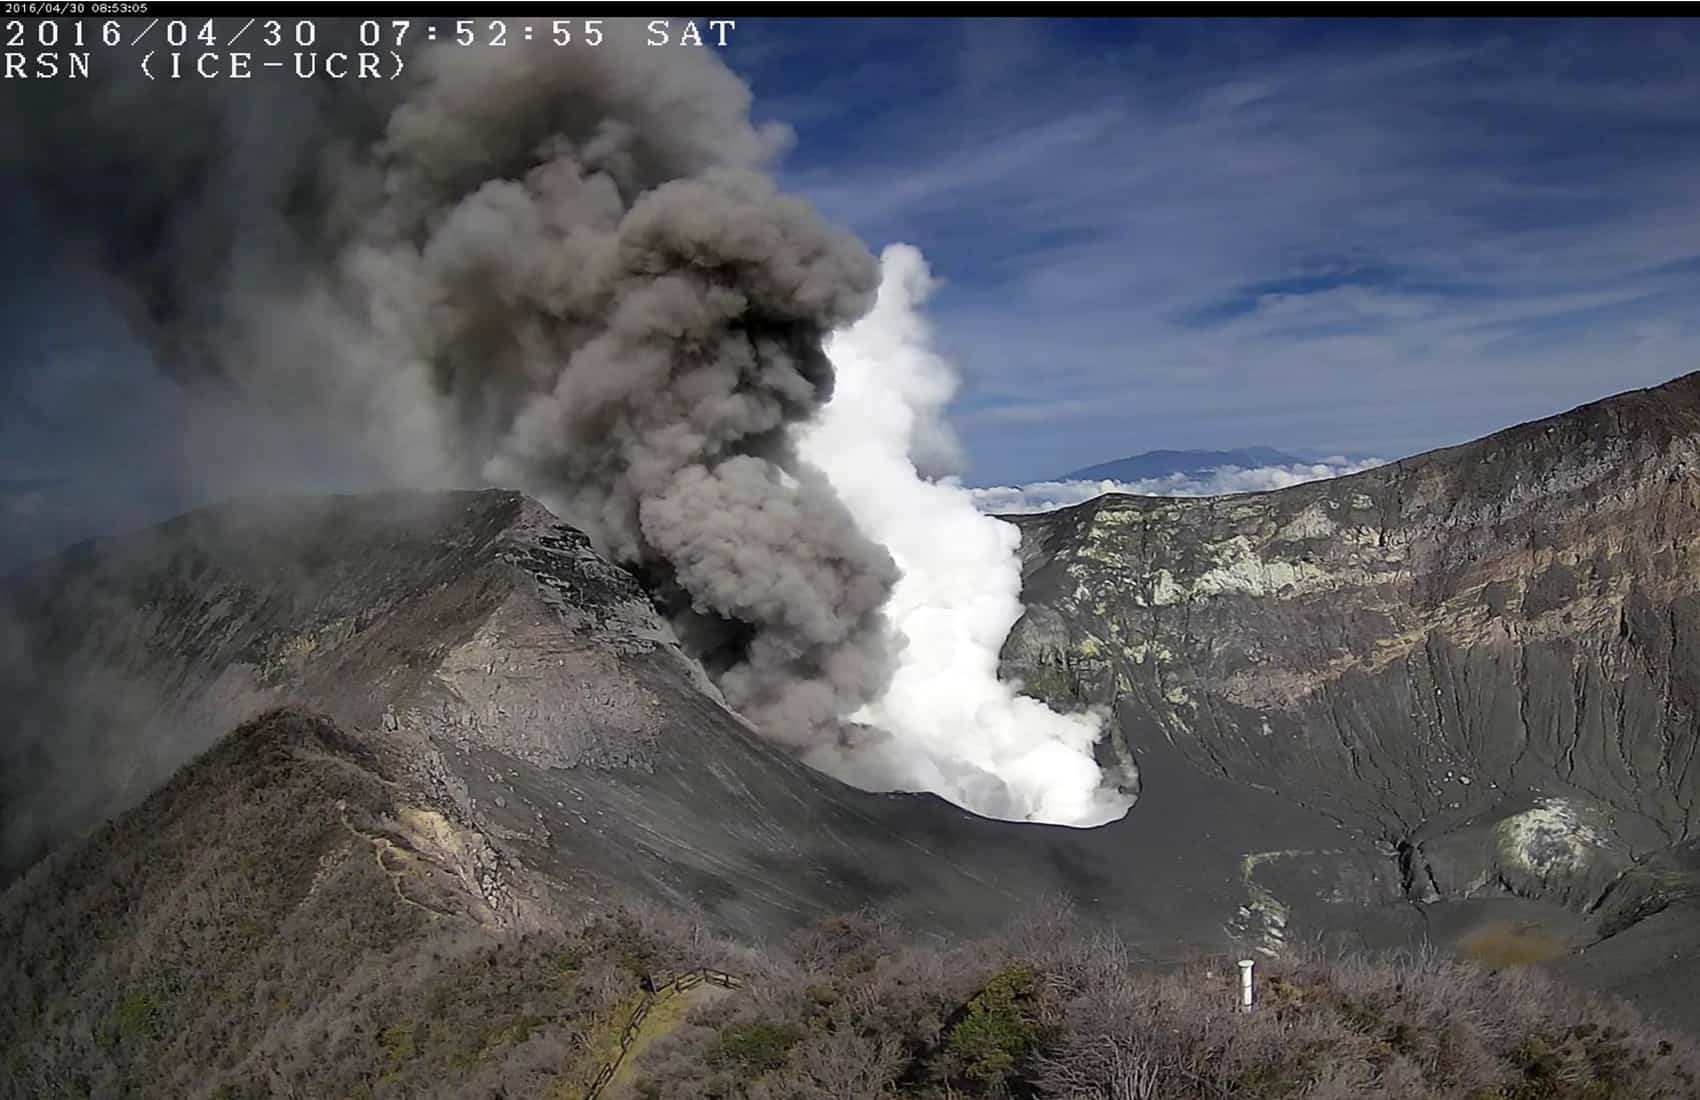 Column Next To A White Of Vapor Coming From Turrialba Volcano Located Some 50 Kilometers East Costa Ricas Capital San Jose Via RSN UCR